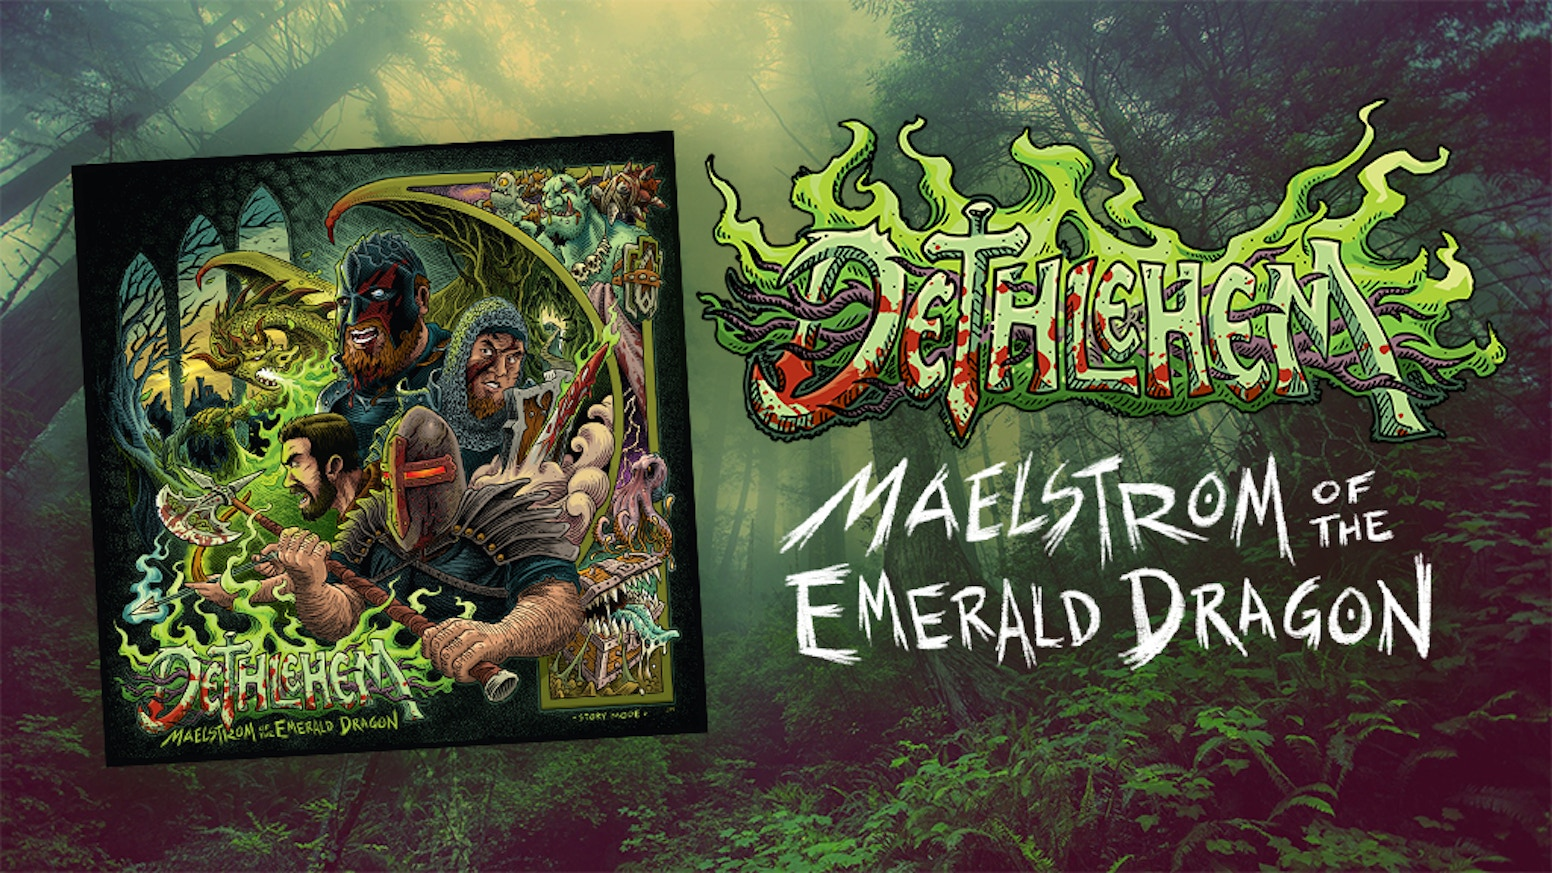 A D&D campaign in the form of a metal album, DETHLEHEM is back with their most ambitious, epic, and adventure filled endeavor yet! Ready your blade!